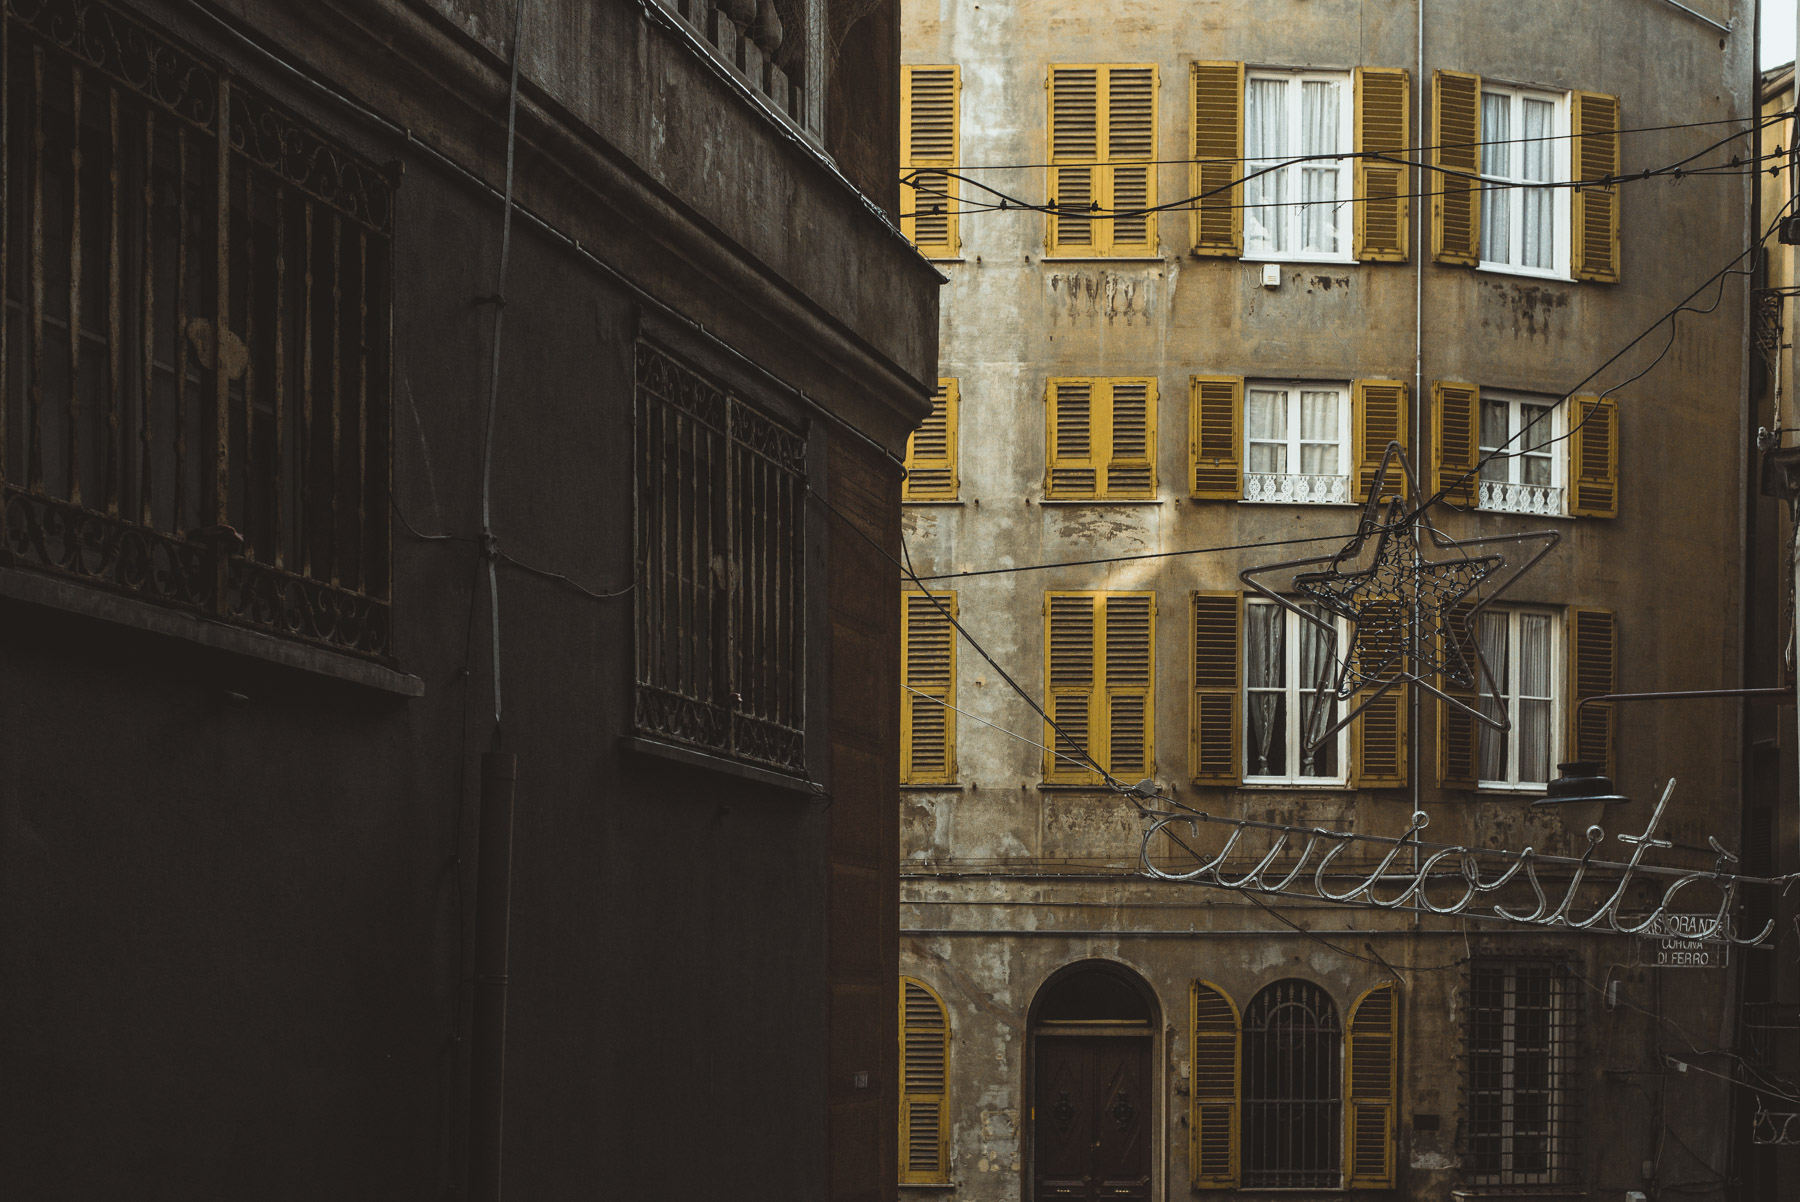 A detail of one building with yellow windows in the old town of Genoa